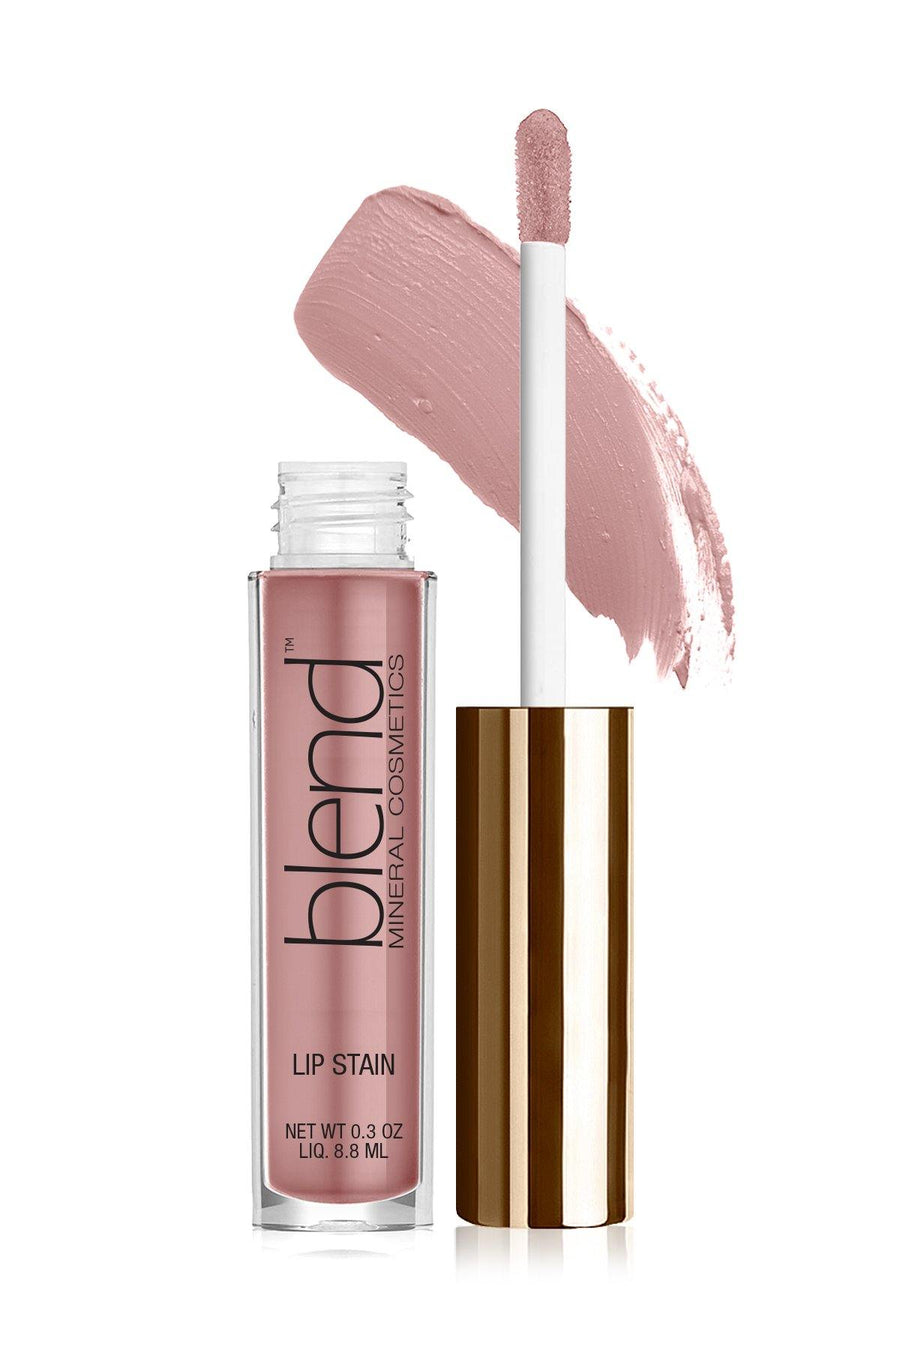 Lip Stain 5 - Pink Snow - Blend Mineral Cosmetics